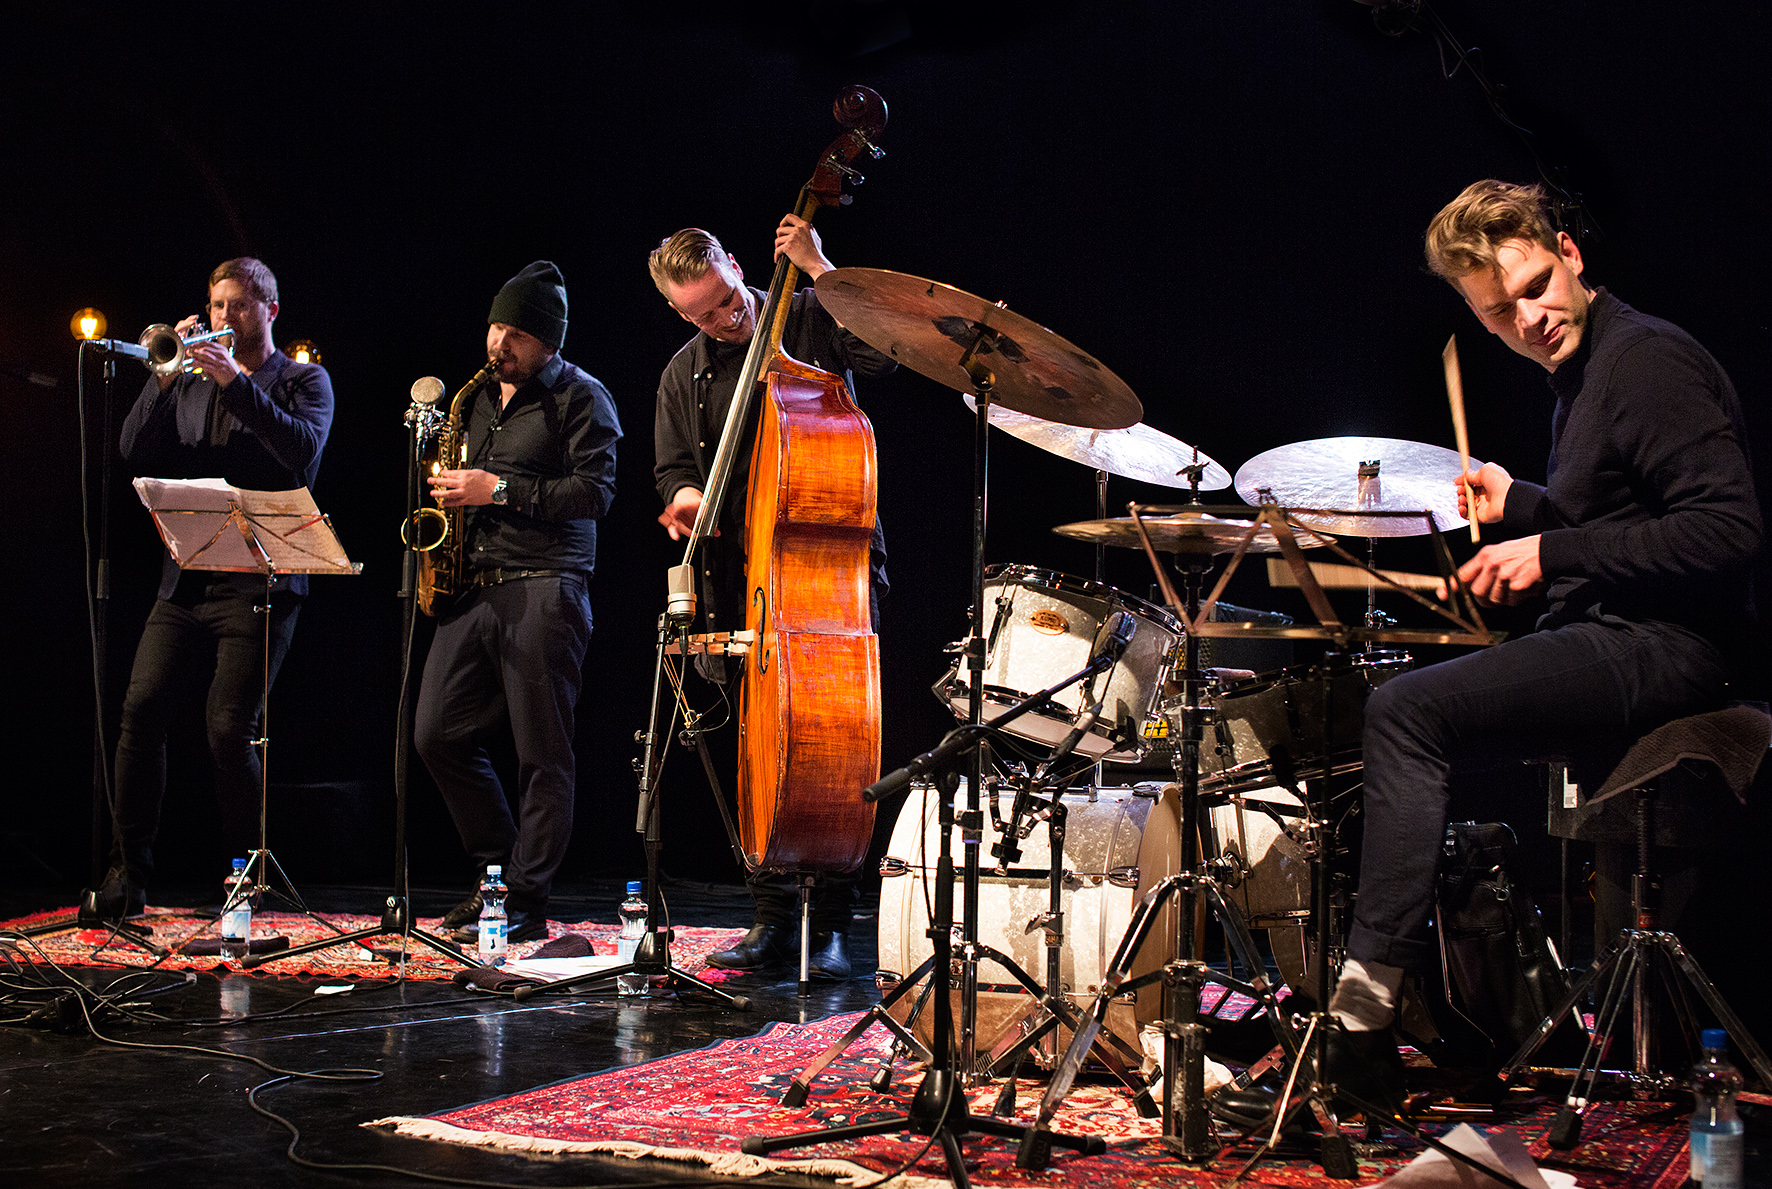 Amok Amor at We Jazz 2016 - photo by Maarit Kytöharju